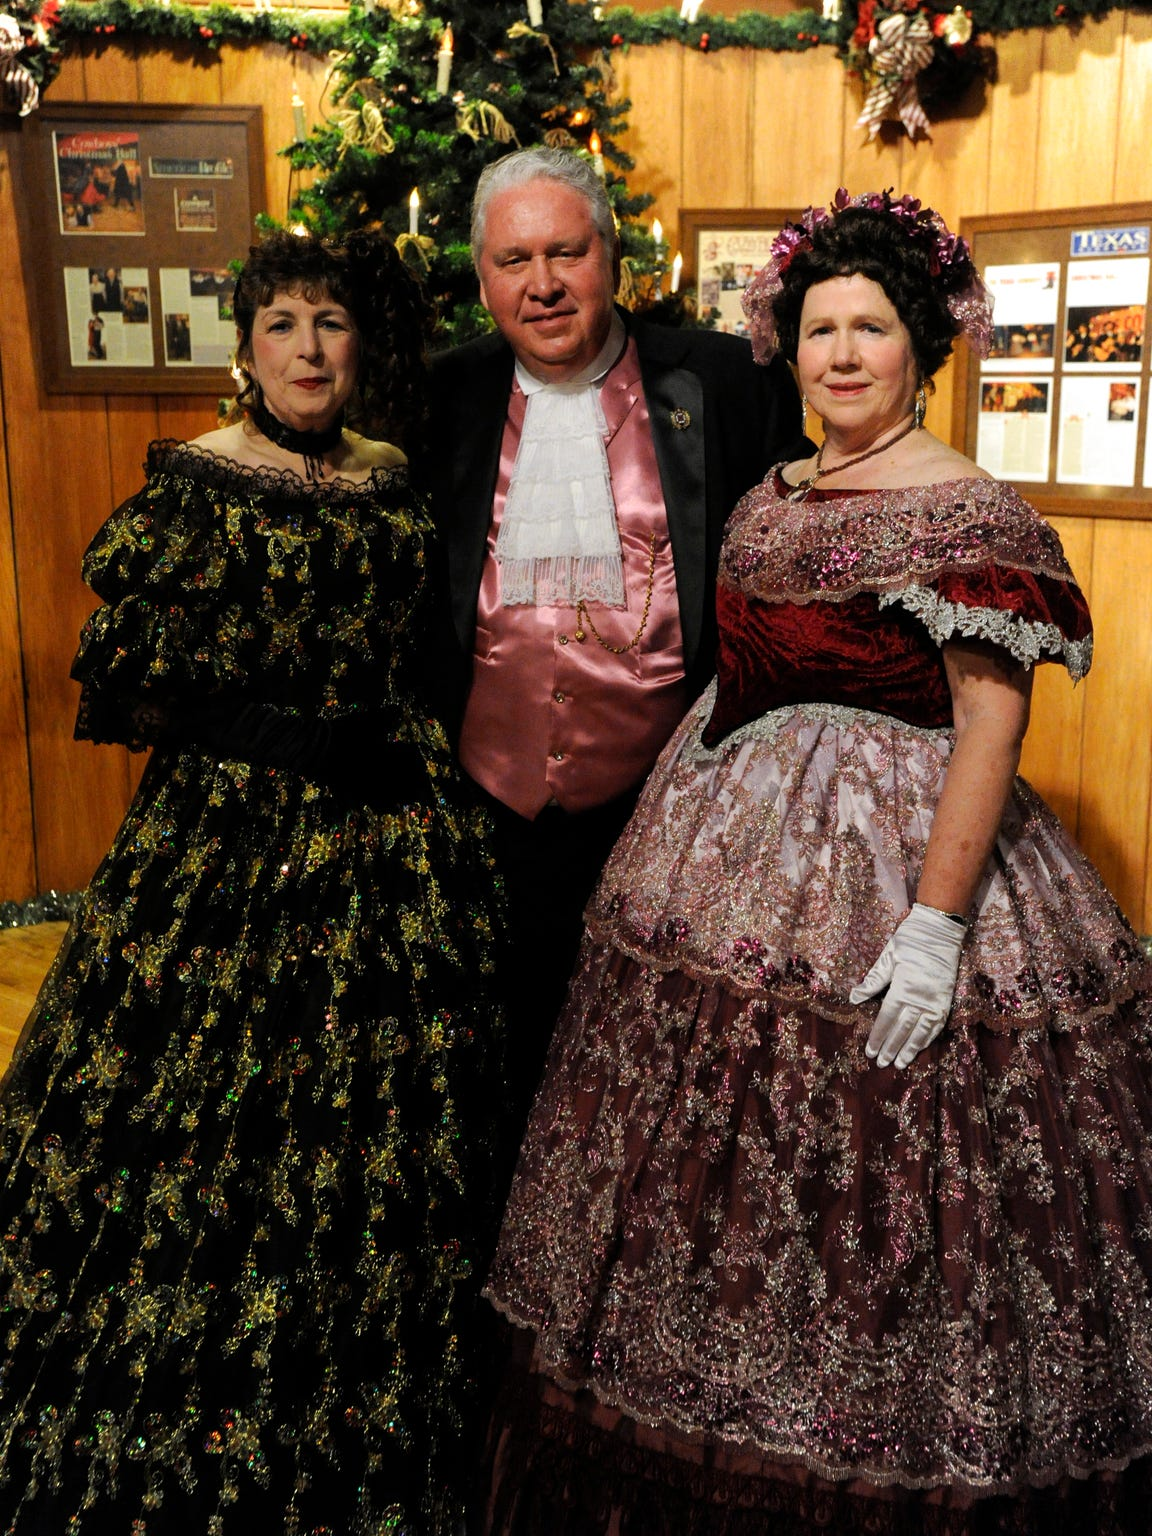 Marie Williams, Grady Blount and Lynda Hardeman attended the 2015 Texas Cowboys' Christmas Ball in period costume from the mid-1880s.